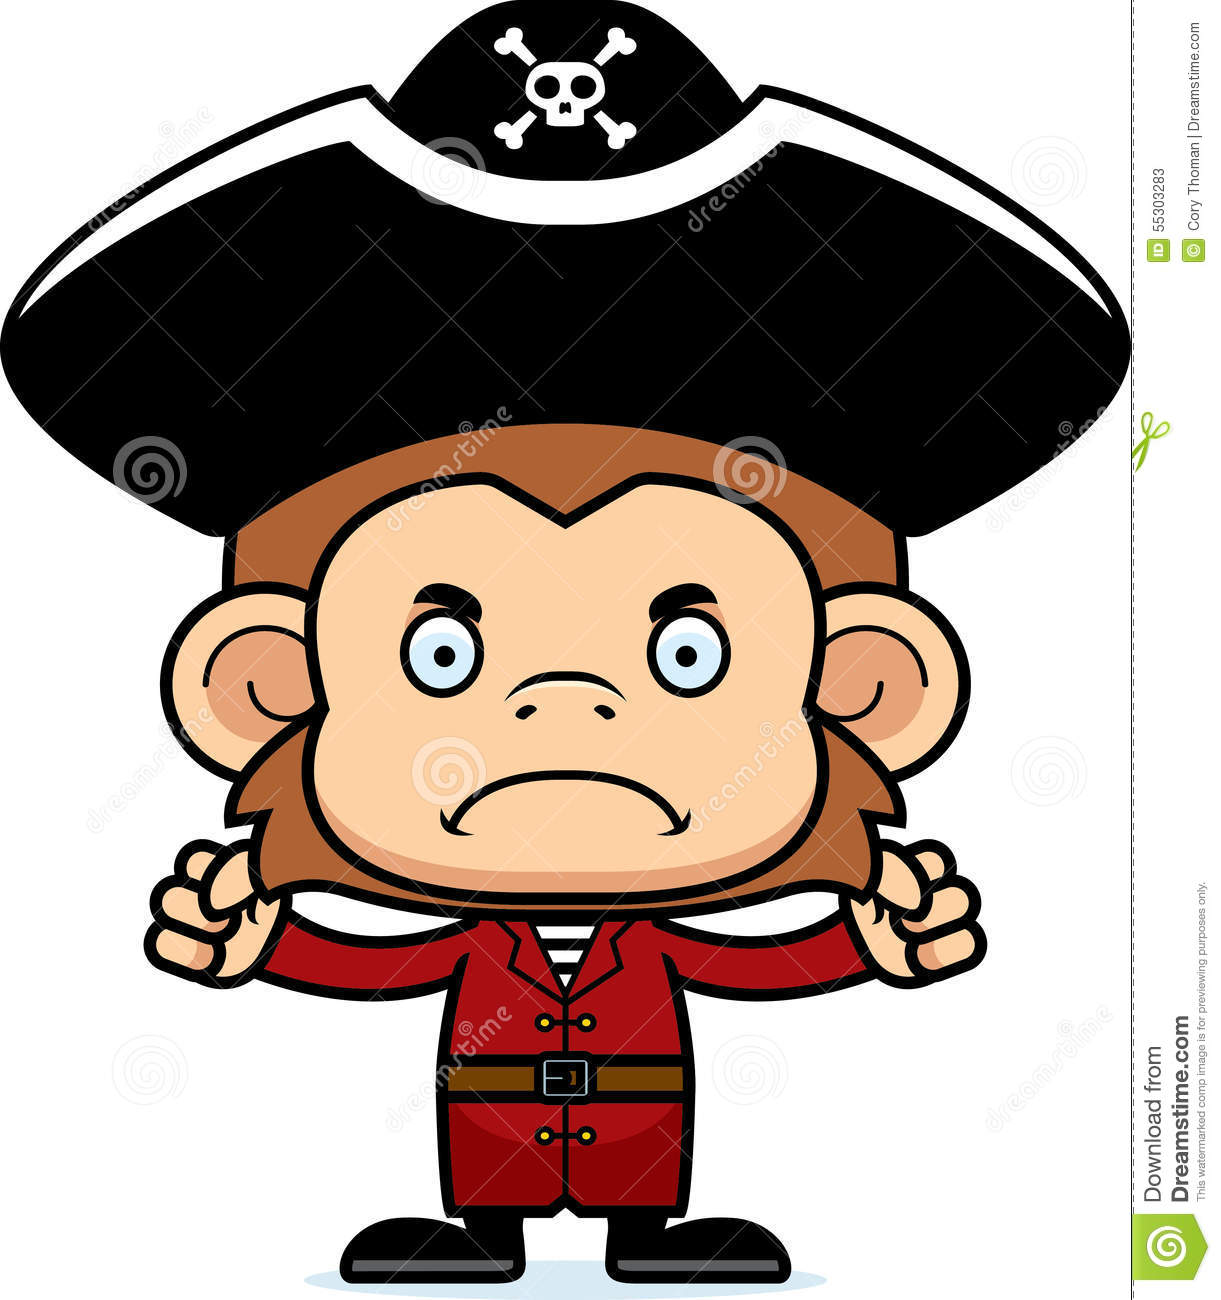 What Is The Angry Pirate